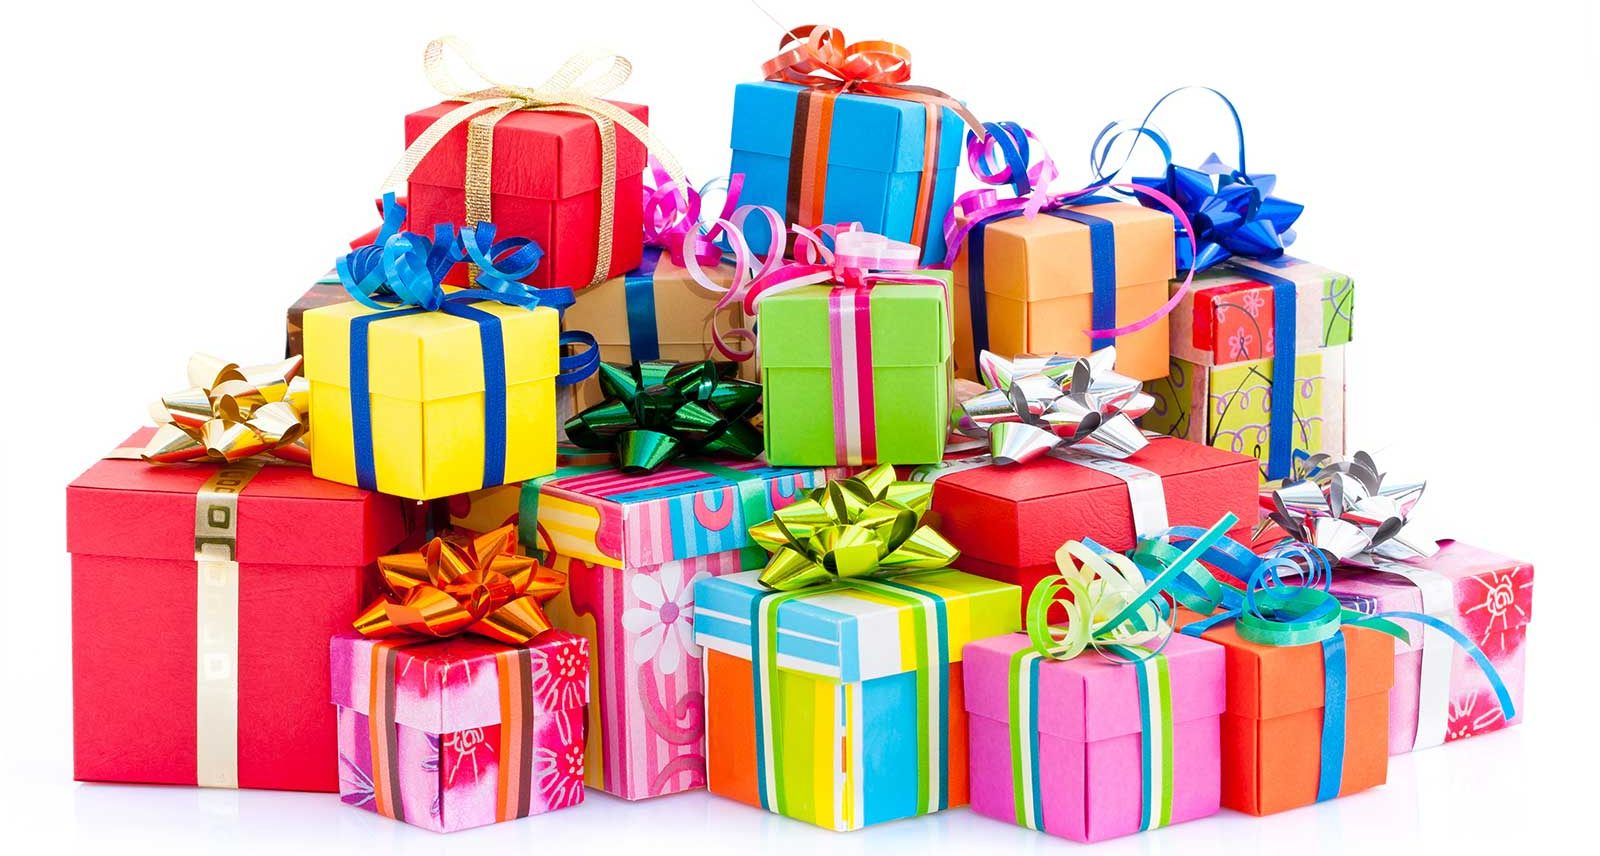 Gifts & Presents Auctions from Deal Locators; Gifts, presents, novelty gifts, novelty presents